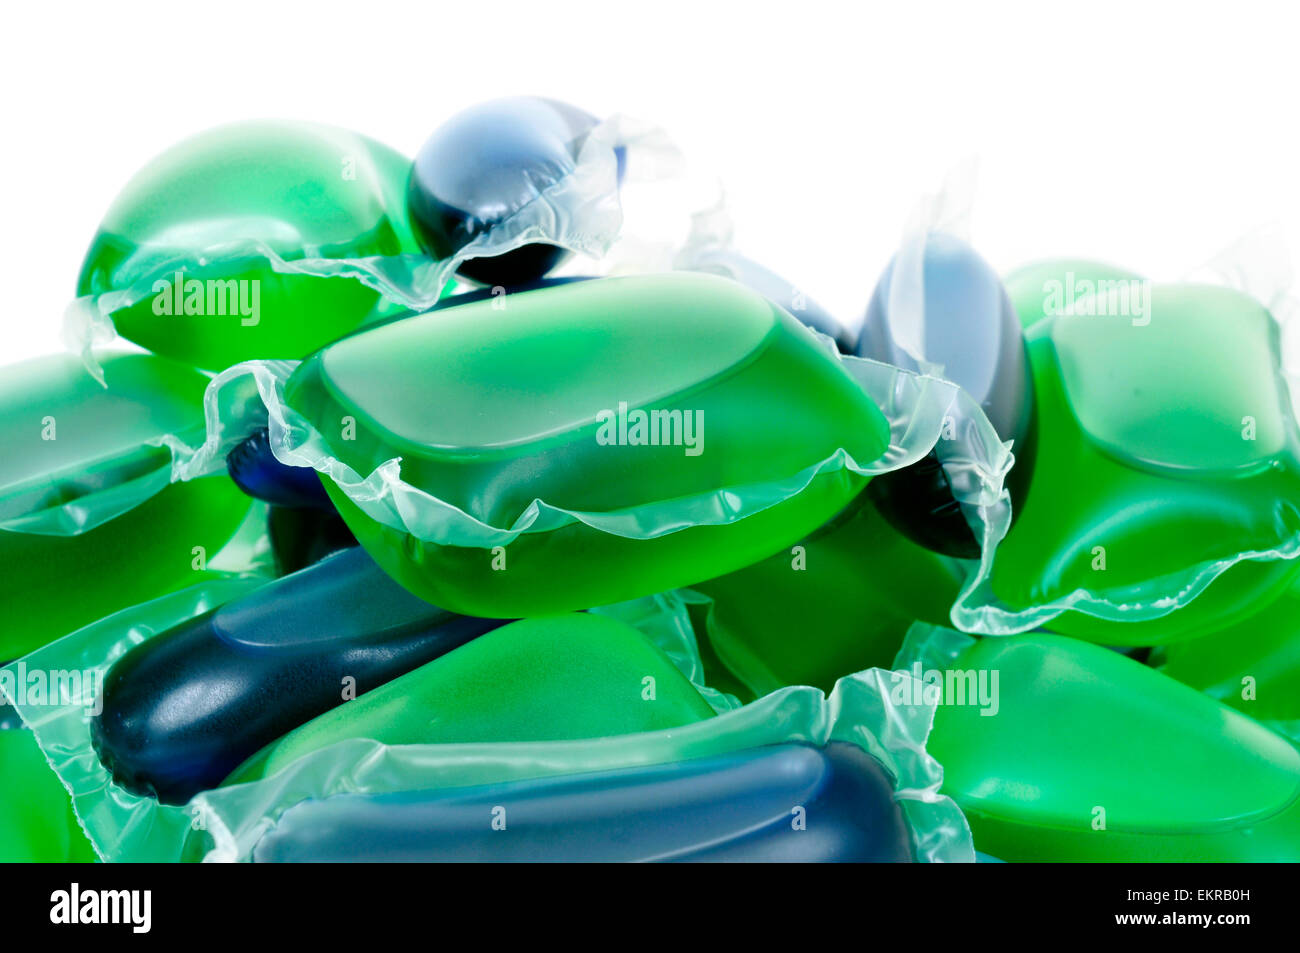 closeup of a pile of liquid laundry detergent sachets on a white background - Stock Image